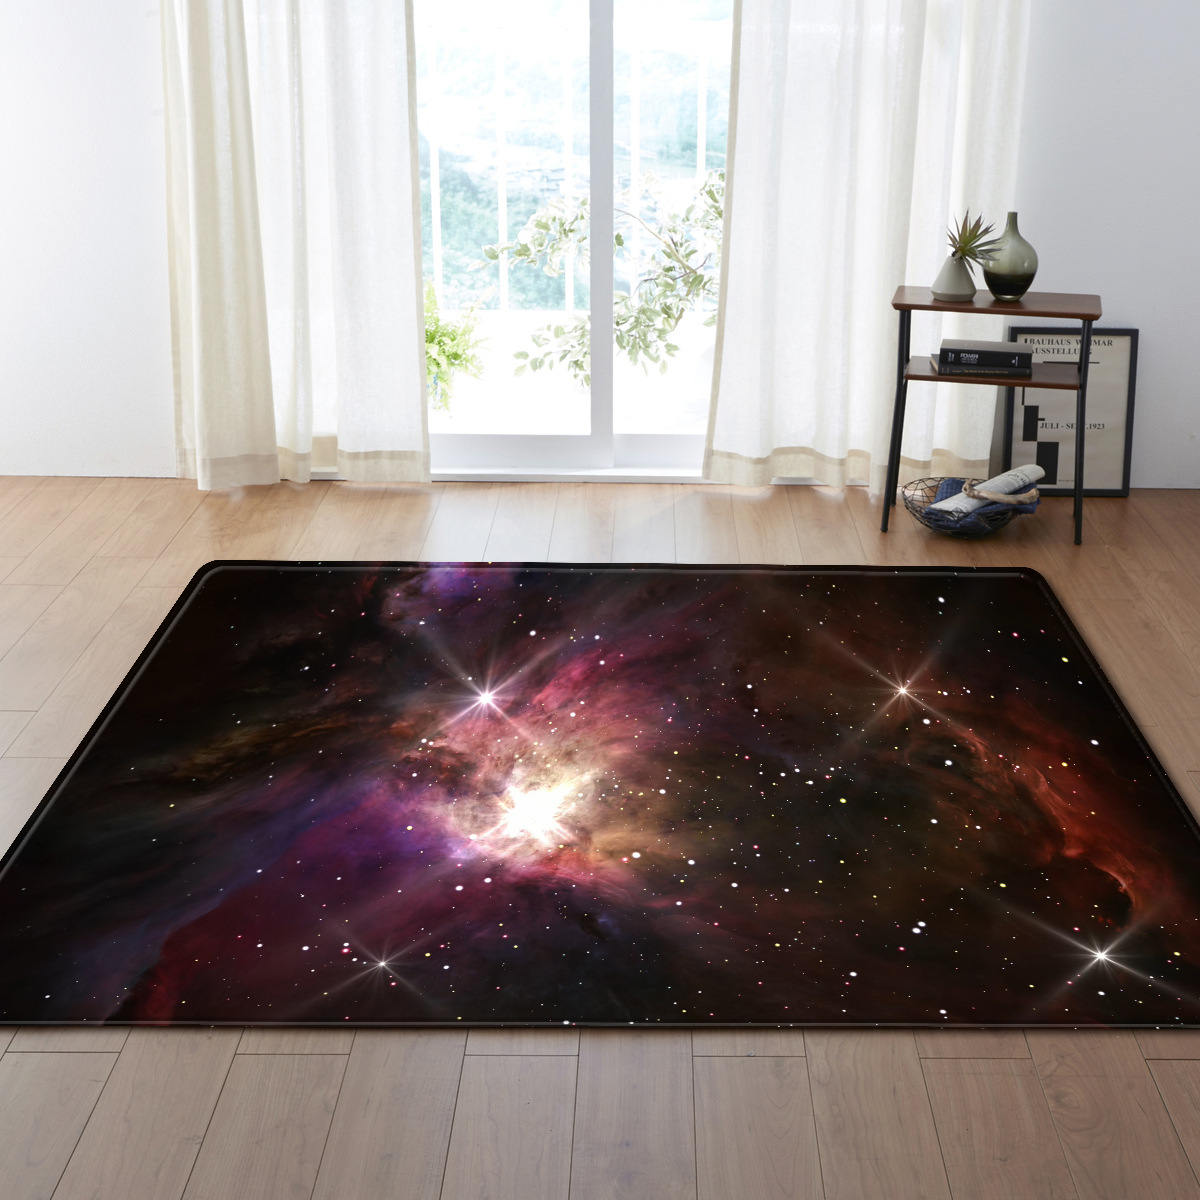 Muzzi Carpet for Sale Star print Thicken Soft Kids Room Play Mat Modern Bedroom Area Rugs Large Carpets for Living RoomMuzzi Carpet for Sale Star print Thicken Soft Kids Room Play Mat Modern Bedroom Area Rugs Large Carpets for Living Room